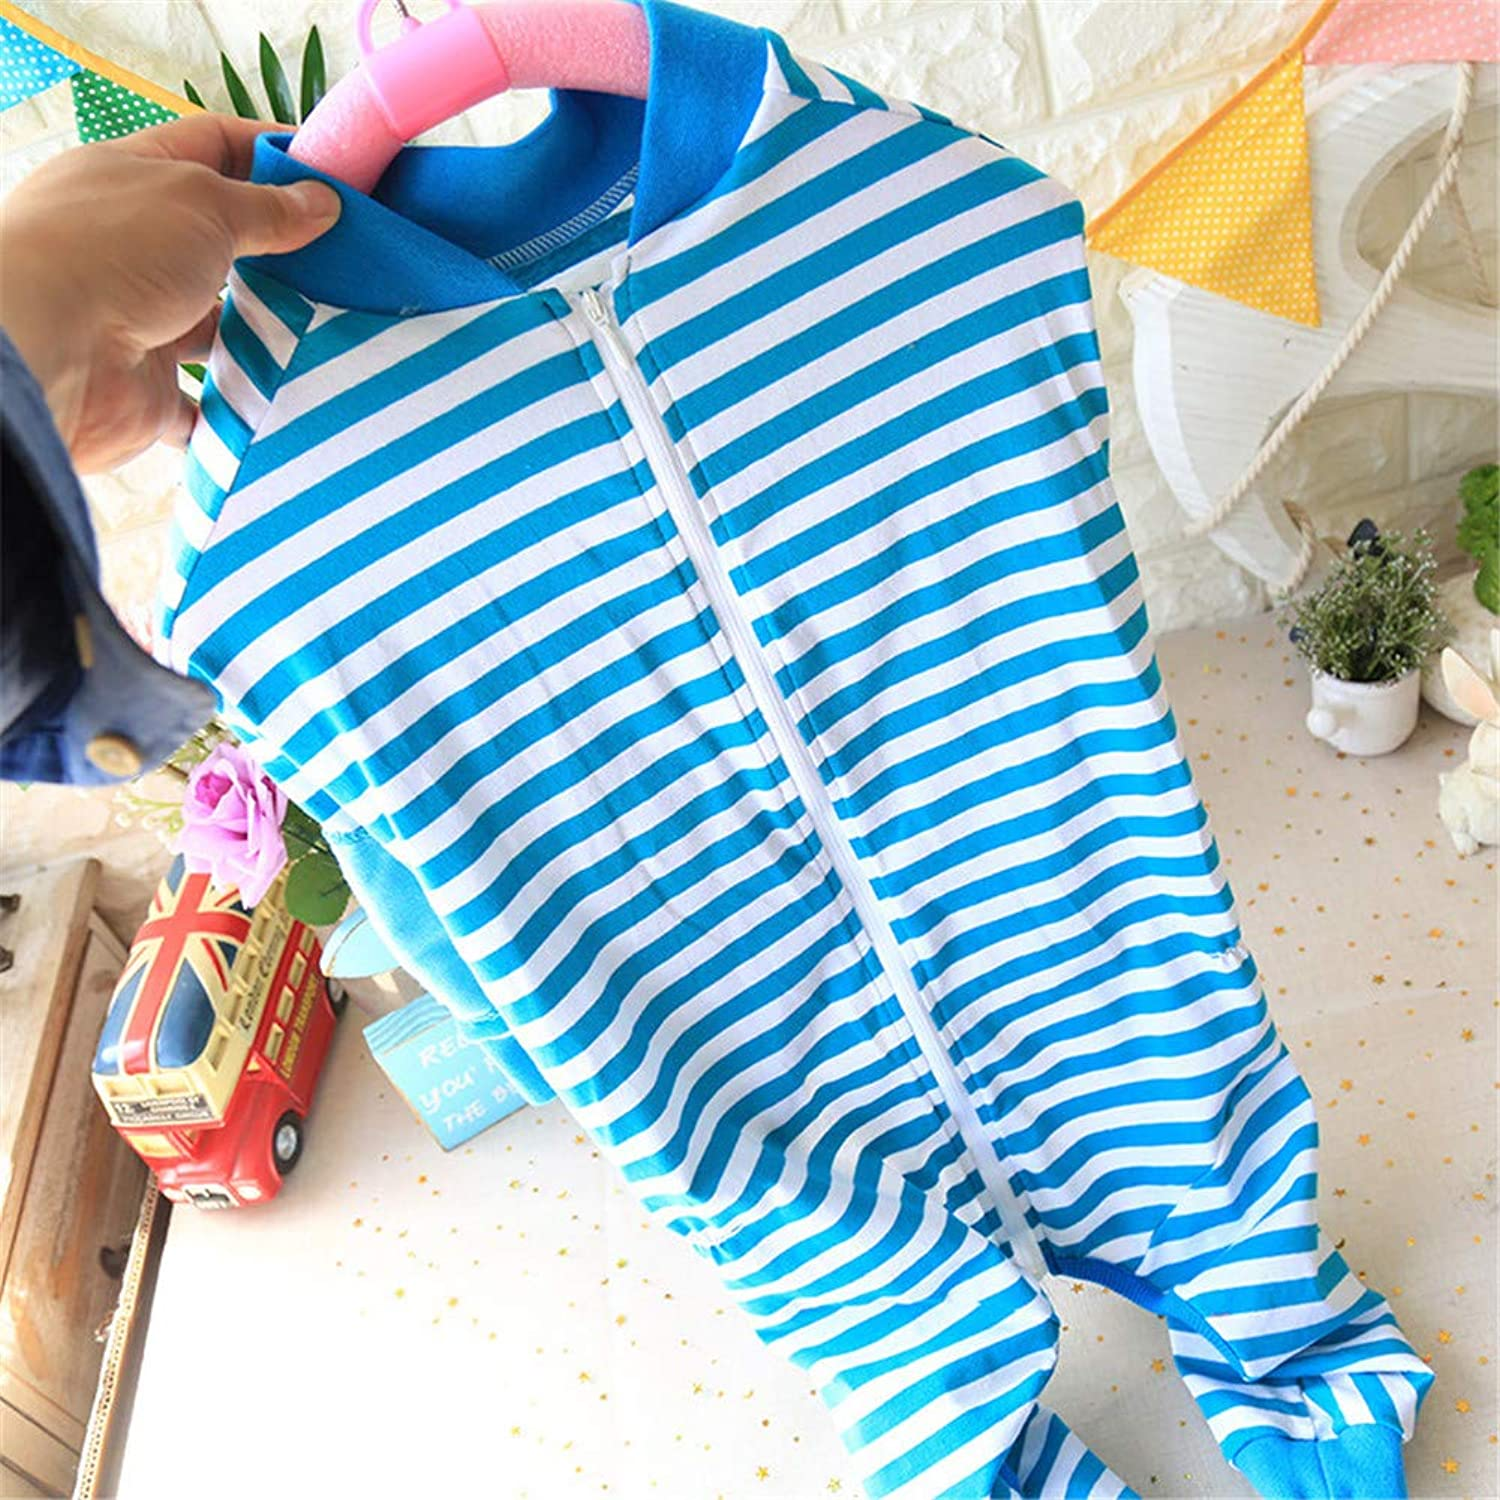 Hdwk&Hped Soft Cotton Dog Pajamas, Striped Small Dogs Puppies Cats Shirt & Jumpsuit & Dress 3 Styles  1 5 ( 3, Large Dog Jumpsuit  bluee)